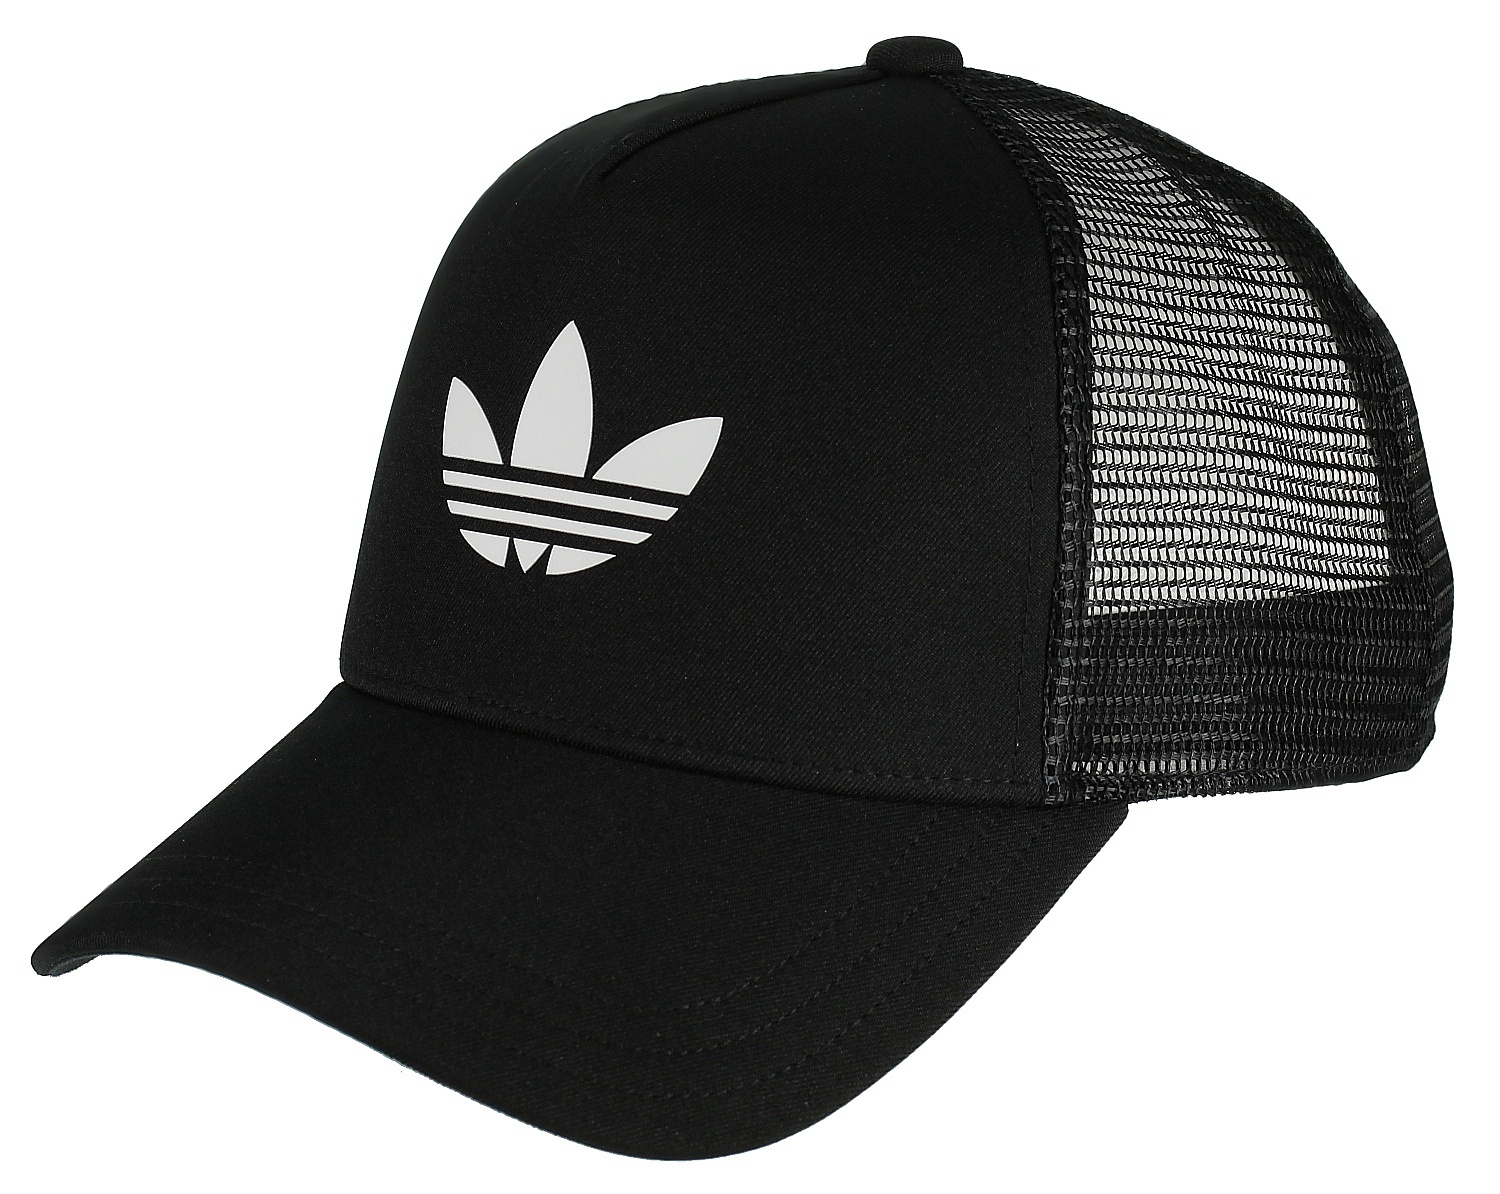 68c20770644 kšiltovka adidas Originals Trefoil Trucker - Black White - Snowboard shop